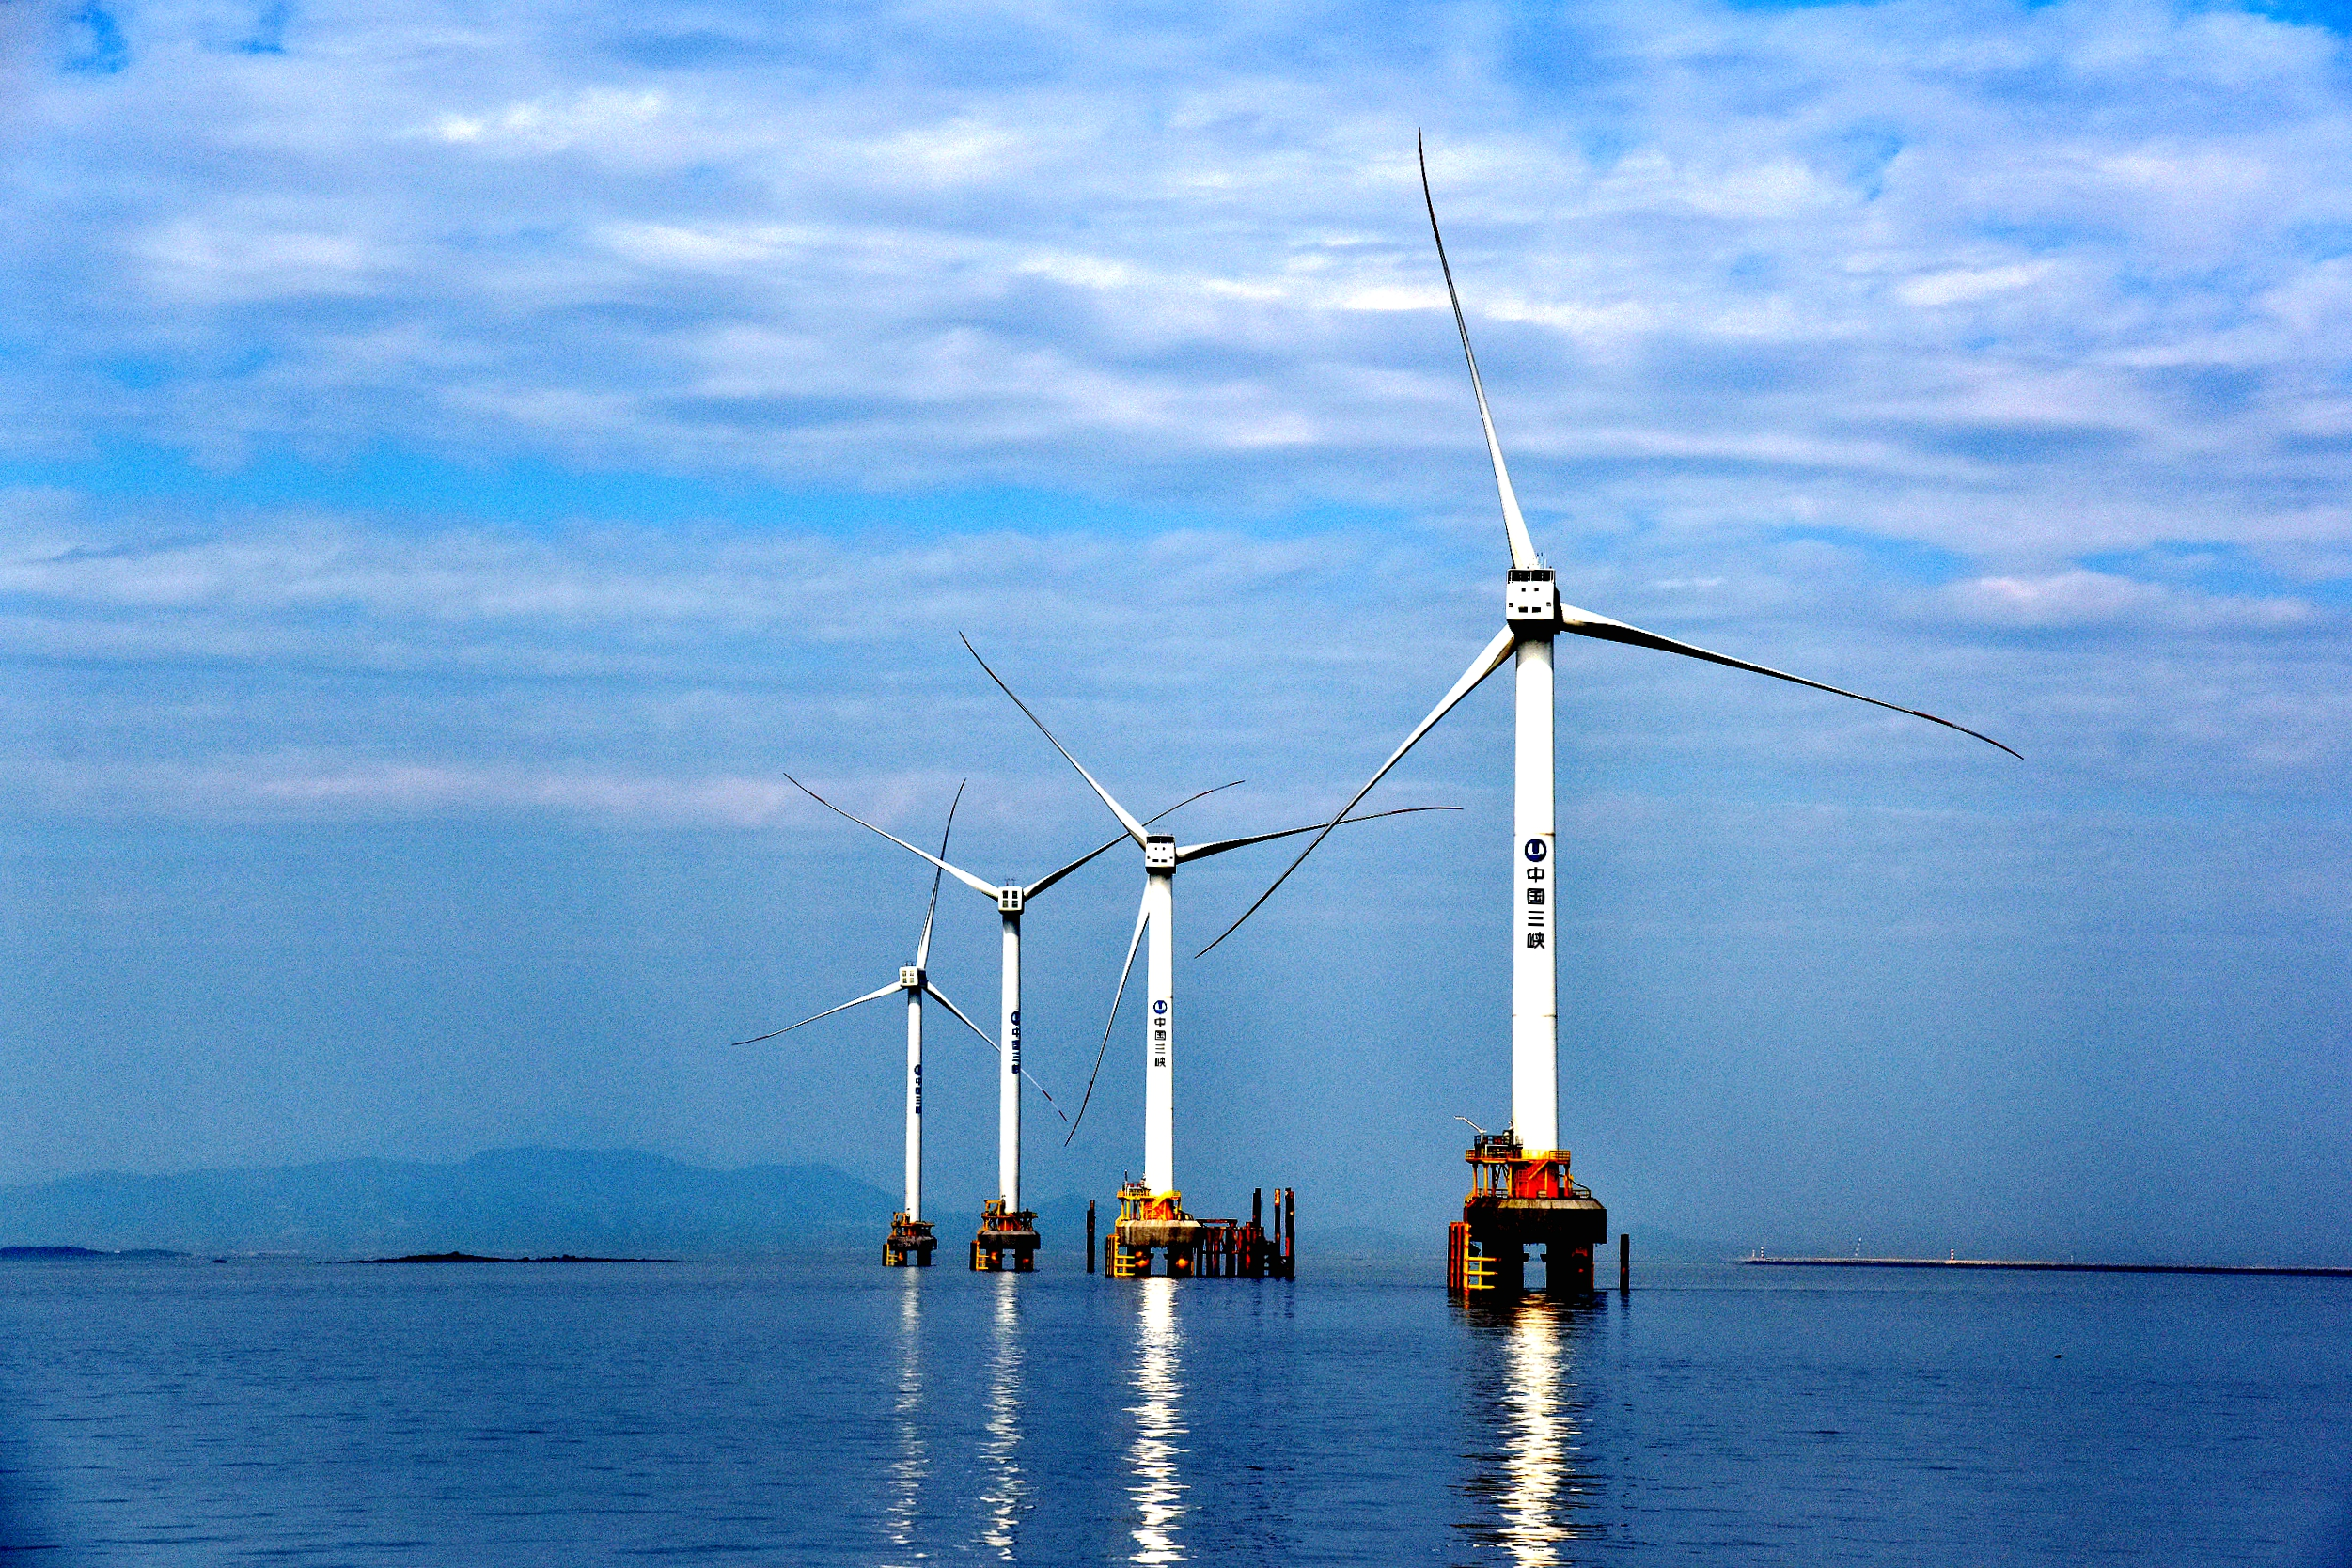 Marching toward the sea: Exploration of offshore wind power